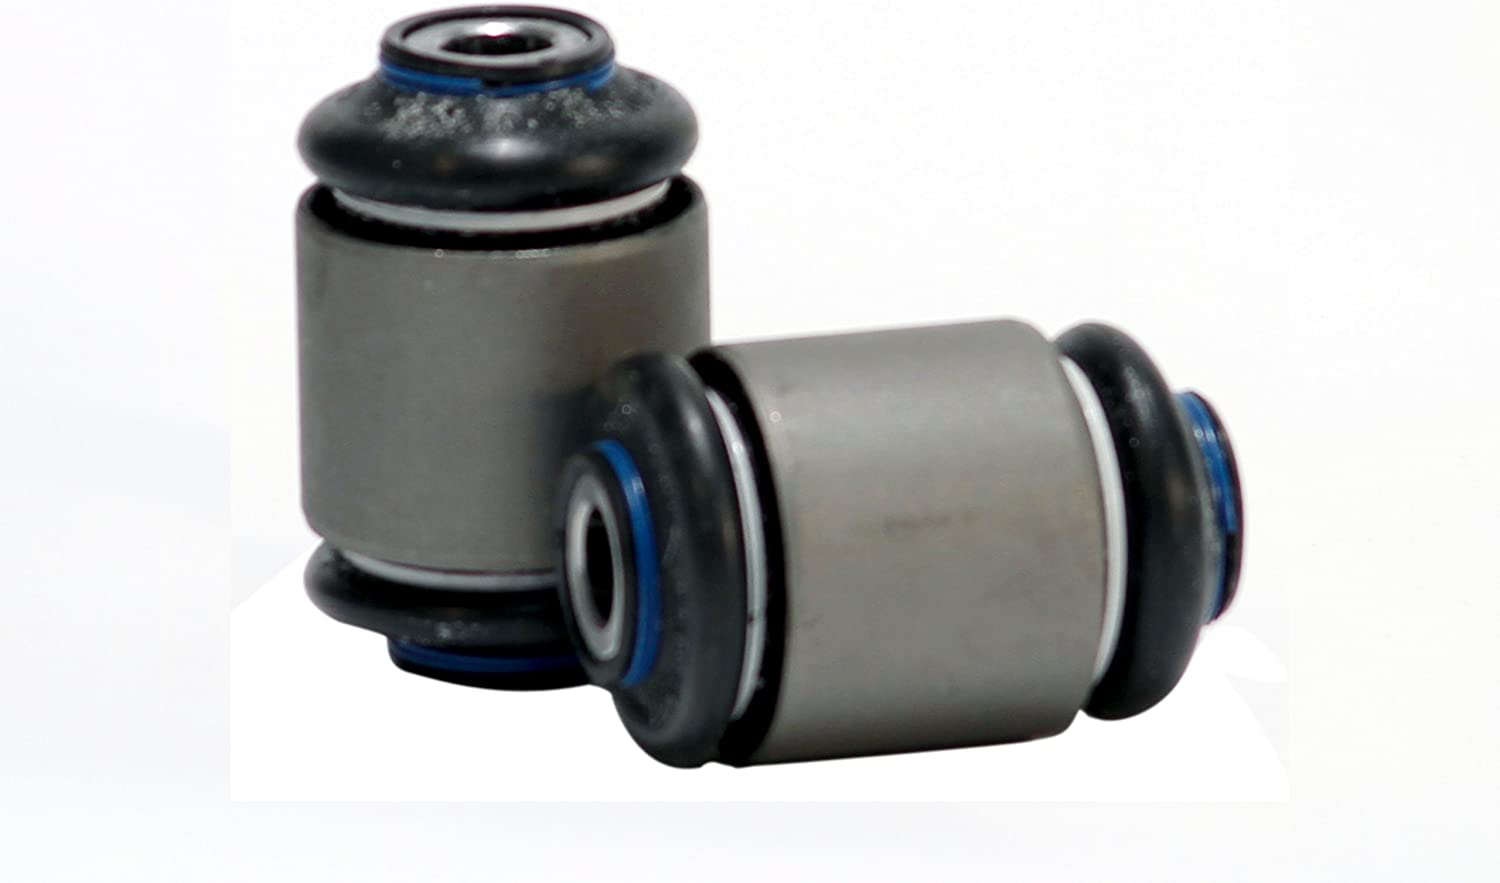 1225 MTC 1225//33-32-1-135-808 Trailing Arm Bushing Outer 33-32-1-135-808 MTC 1225 for BMW Models 33-32-1-135-808